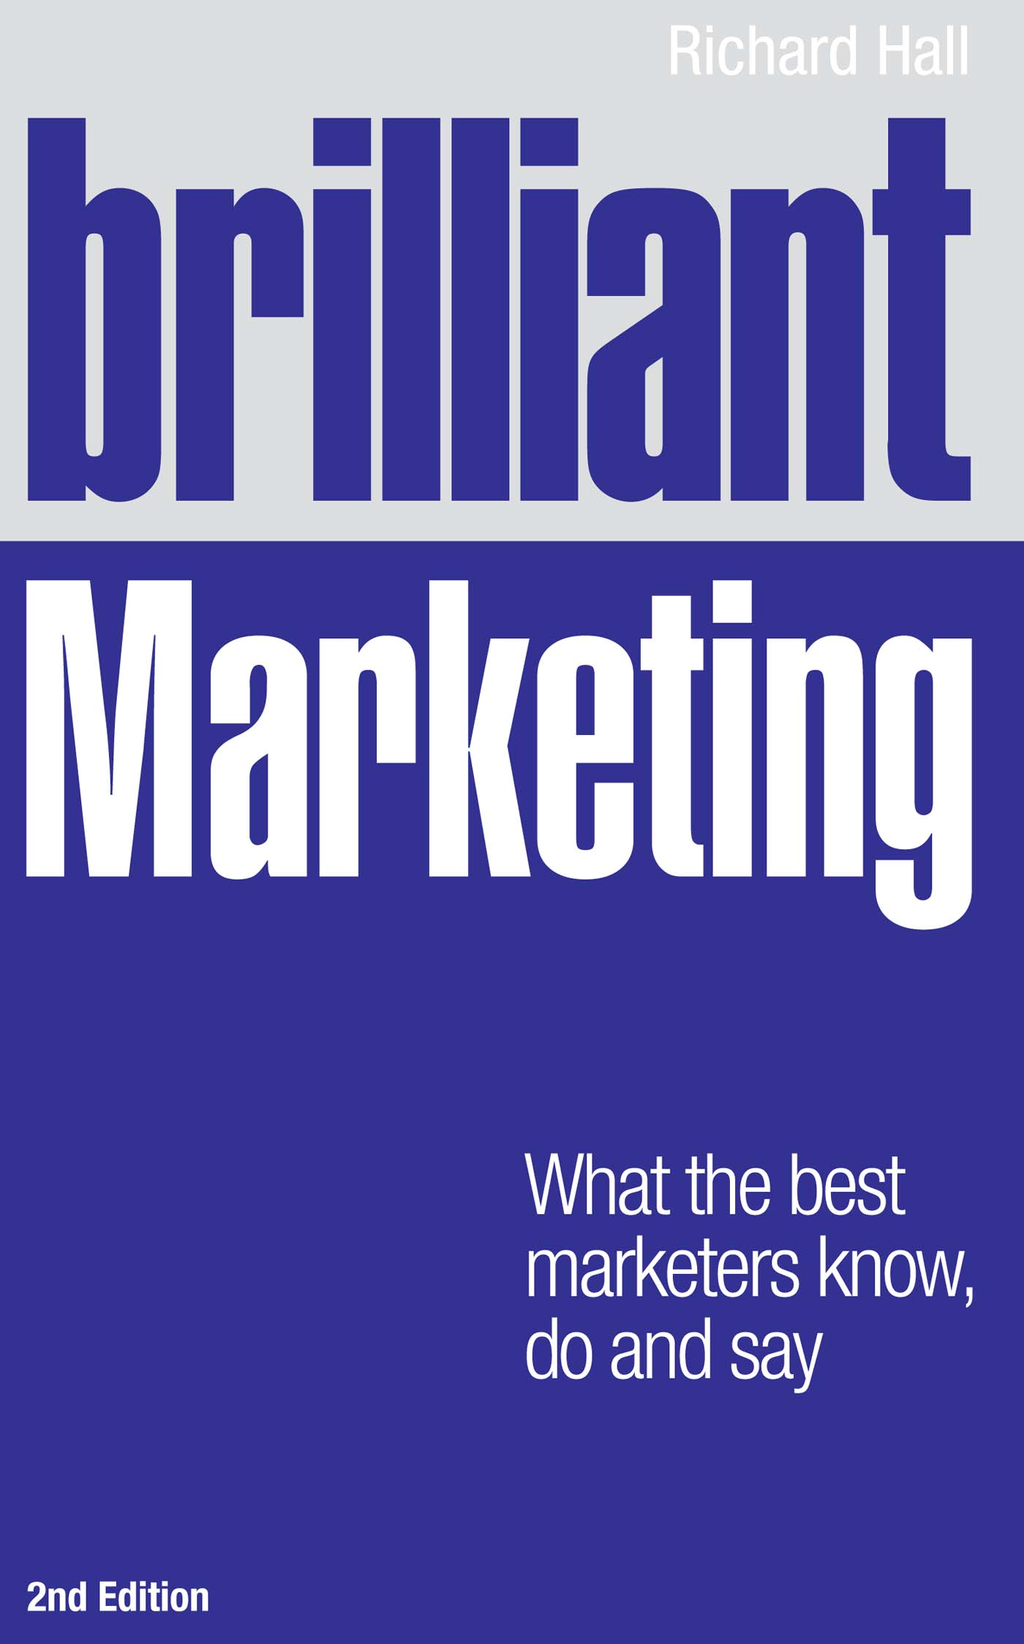 Brilliant Marketing What the best marketers know,  do and say